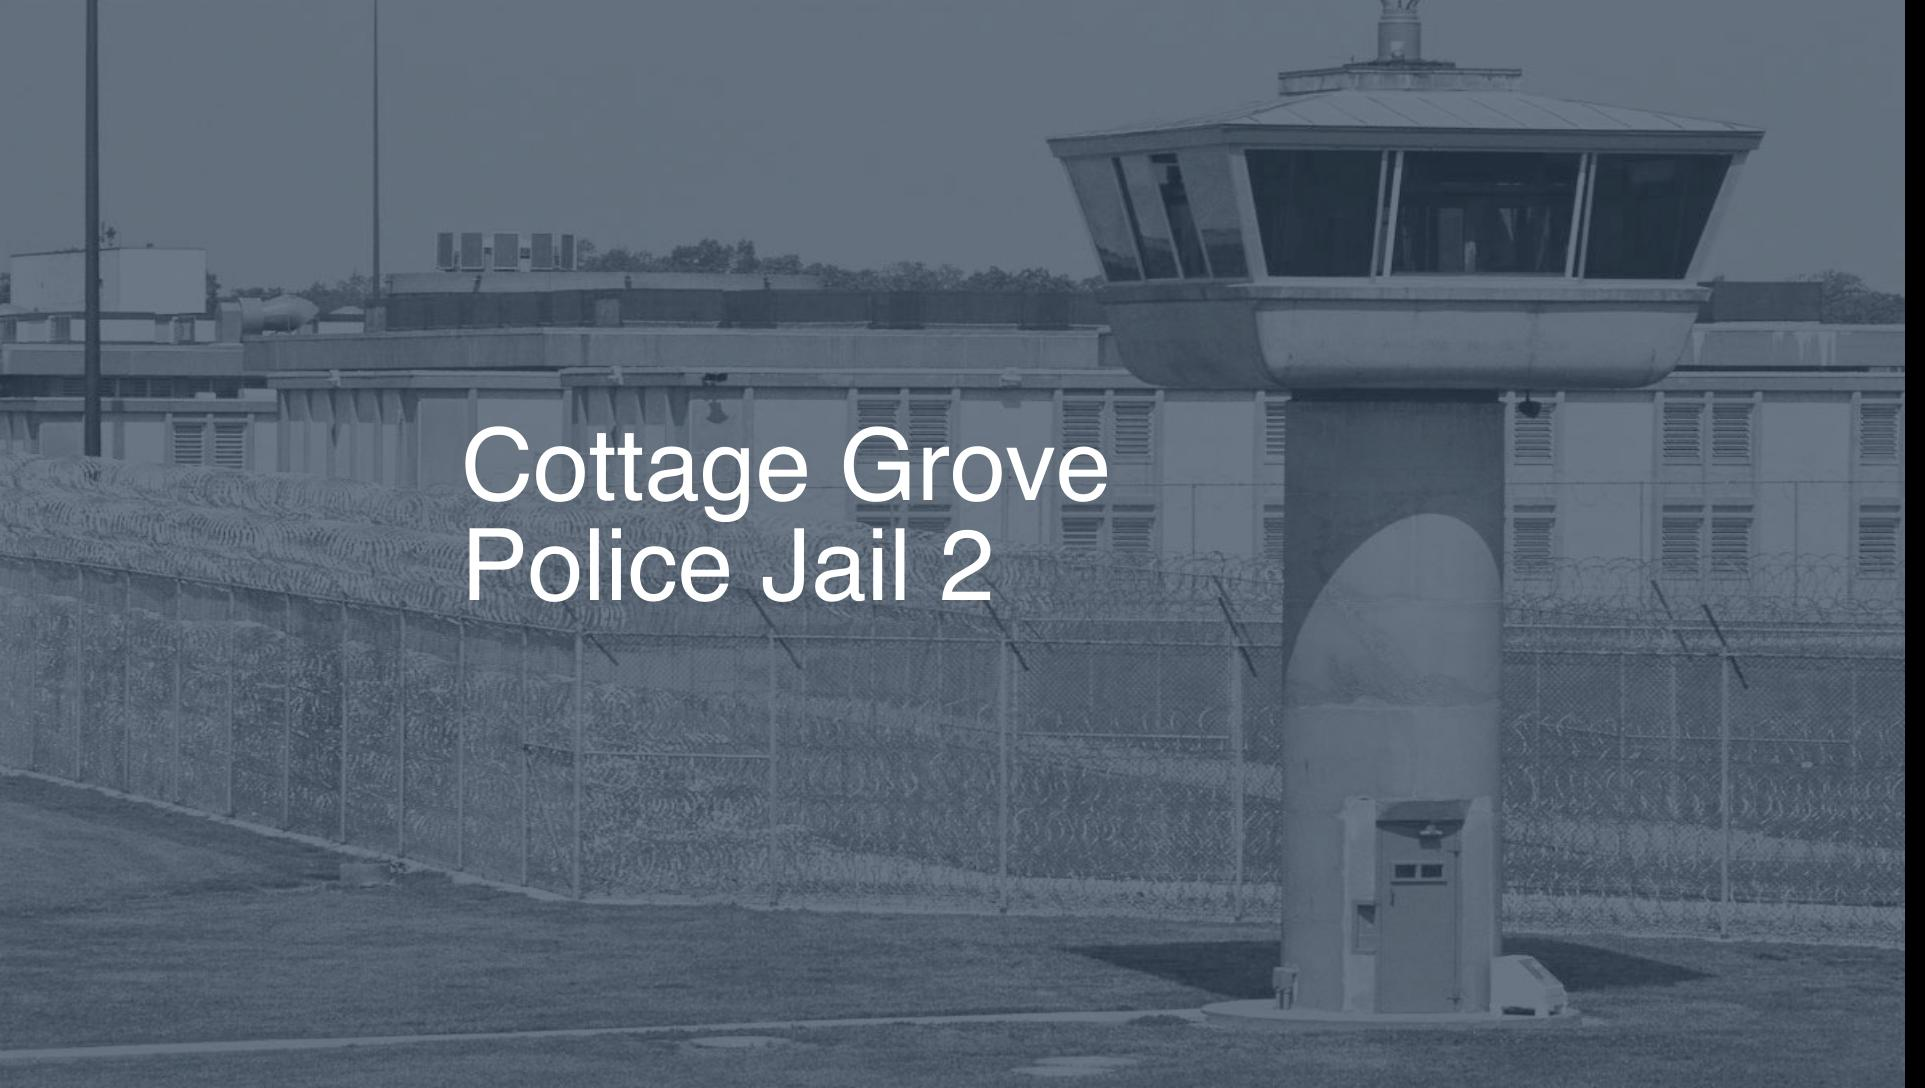 Cottage Grove Police Jail correctional facility picture